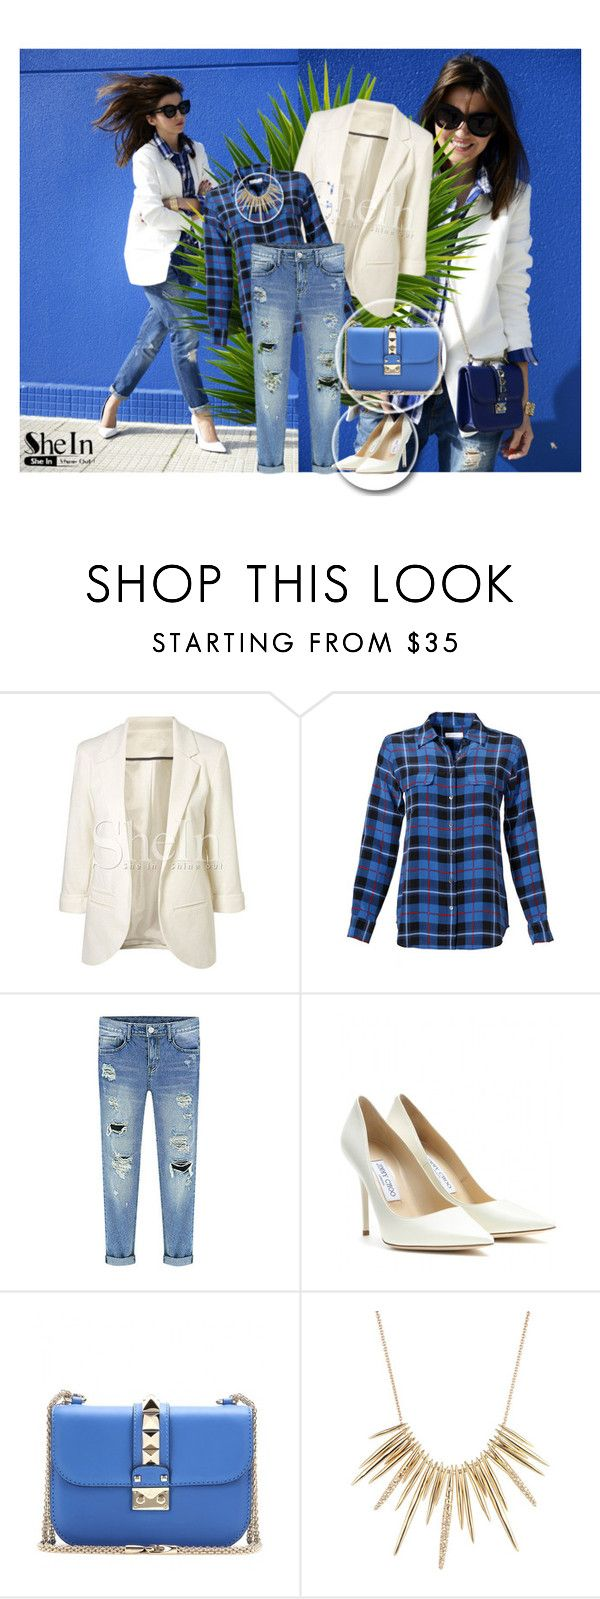 """Shein"" by nejra-e ❤ liked on Polyvore featuring Equipment, Jimmy Choo, Valentino and Alexis Bittar"